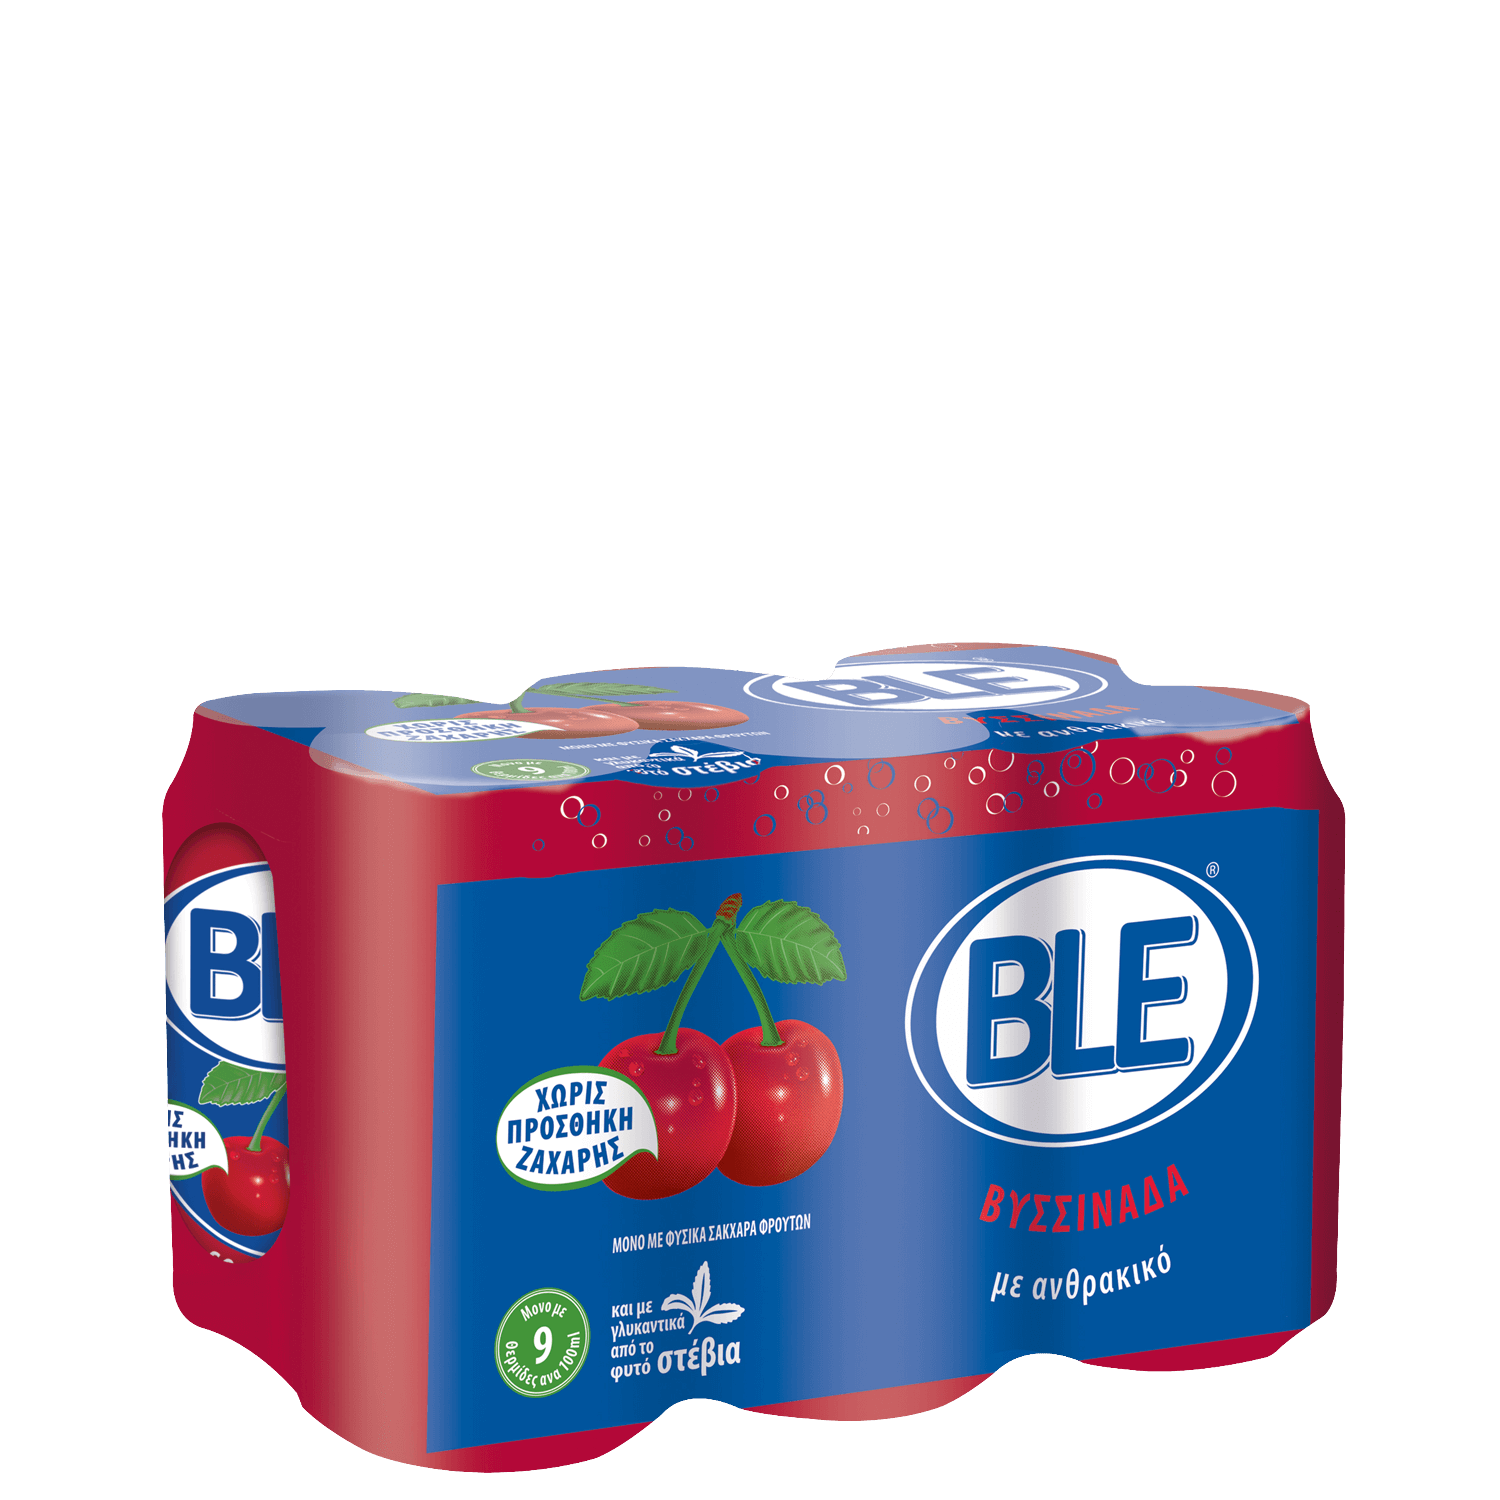 Ble Cherry - Multi Pack - (6x330ml cans)